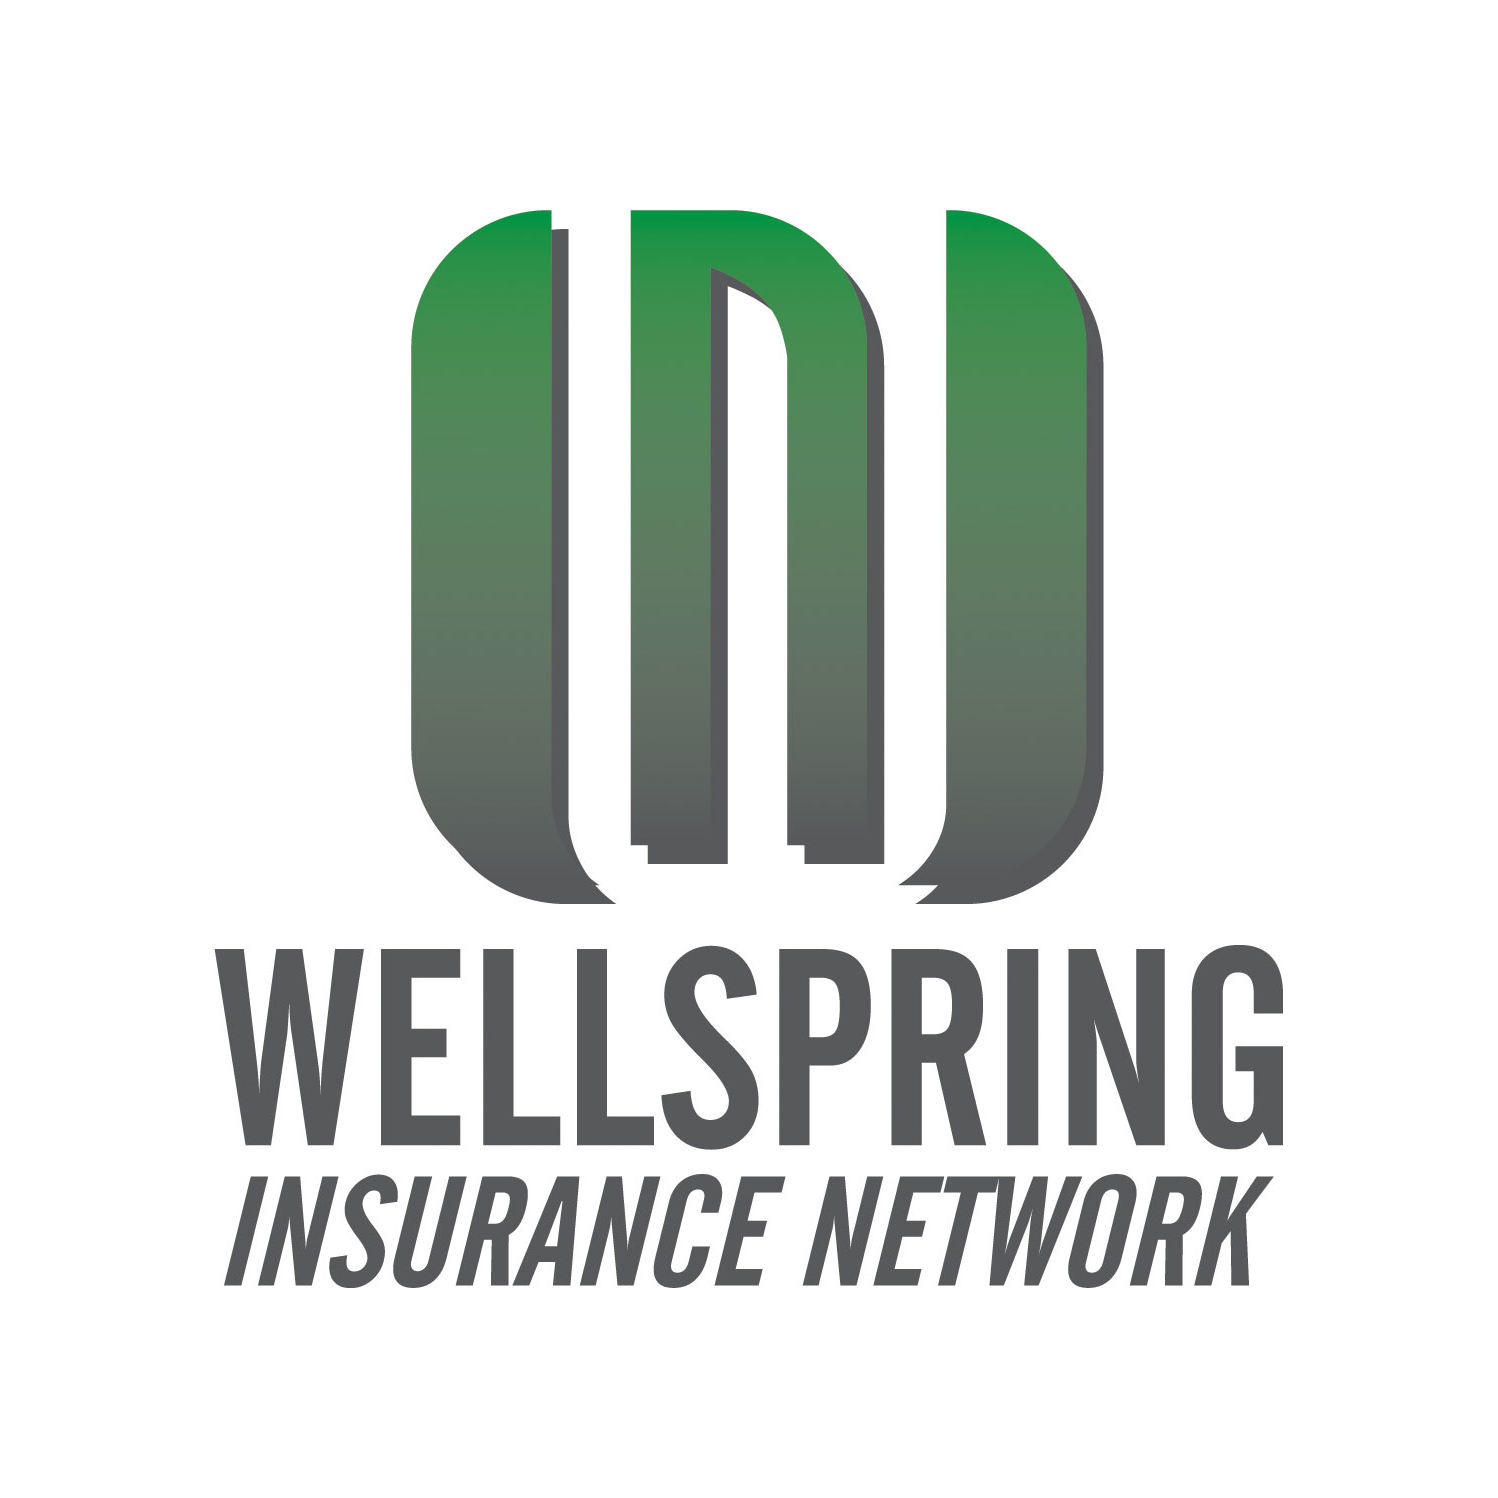 Wellspring Insurance Network Inc.